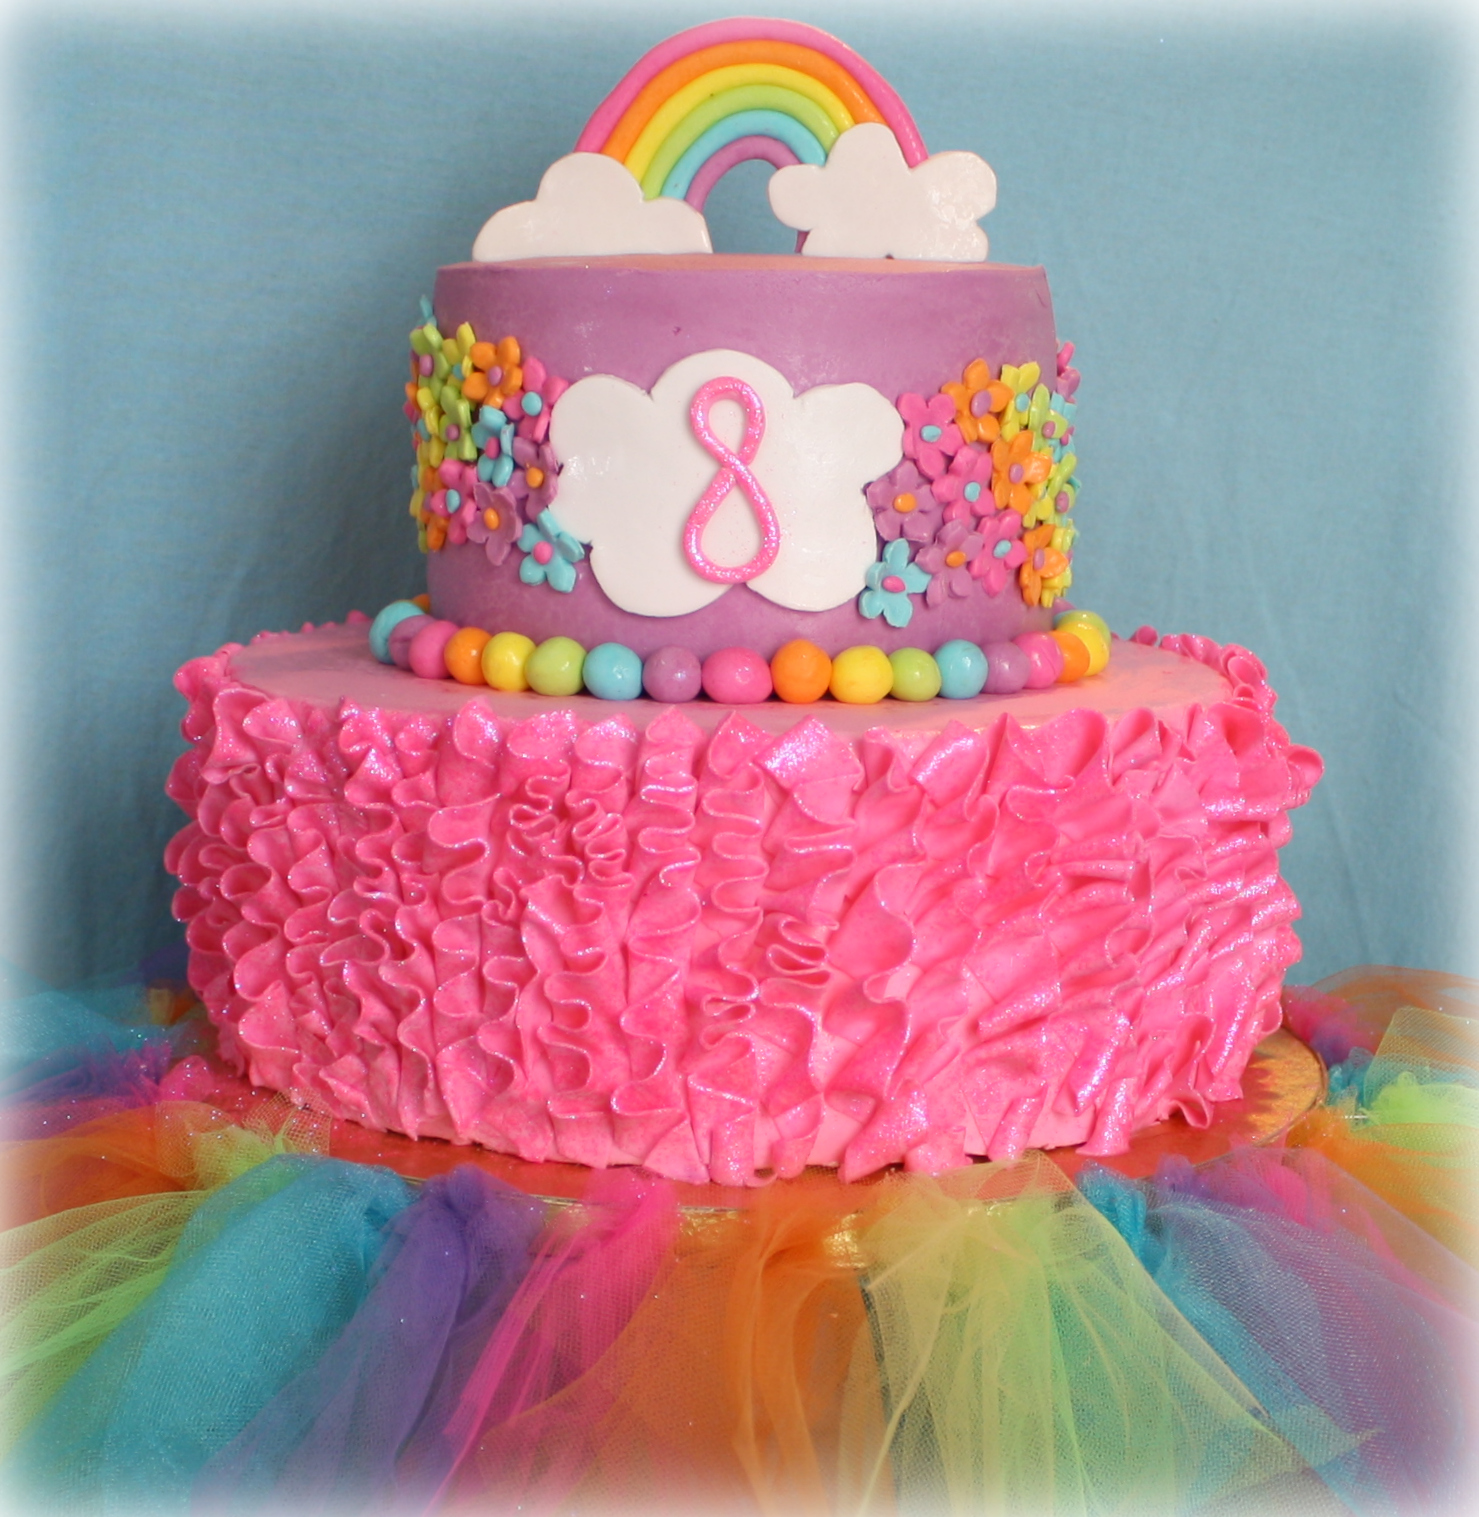 Happy Birthday Cakes For Girls: The Butterfly Sweets Blog